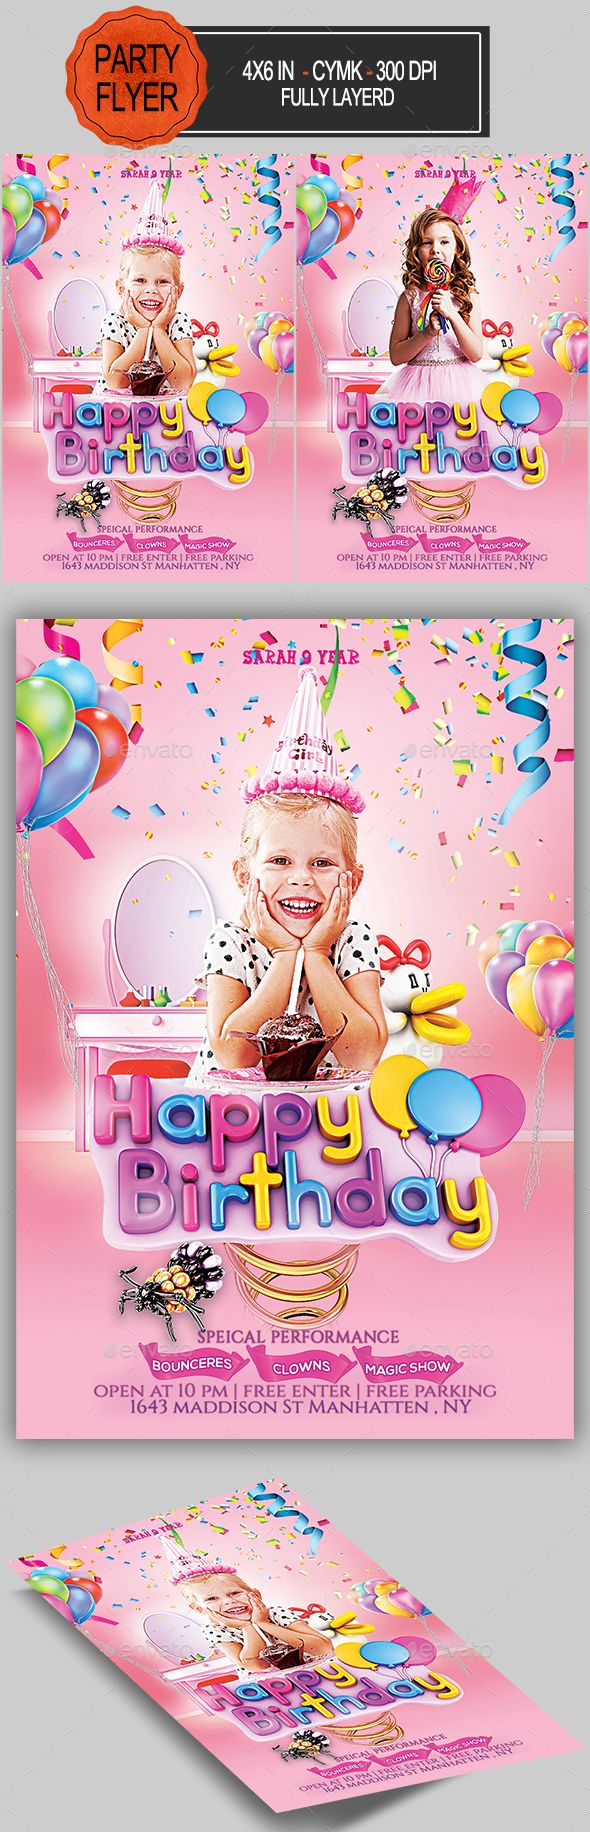 #Kids #Birthday #Party #Flyer #Template - #Clubs & #Parties #Events #design. Download here: https://graphicriver.net/item/kids-birthday-flyer/19891812?ref=yinkira